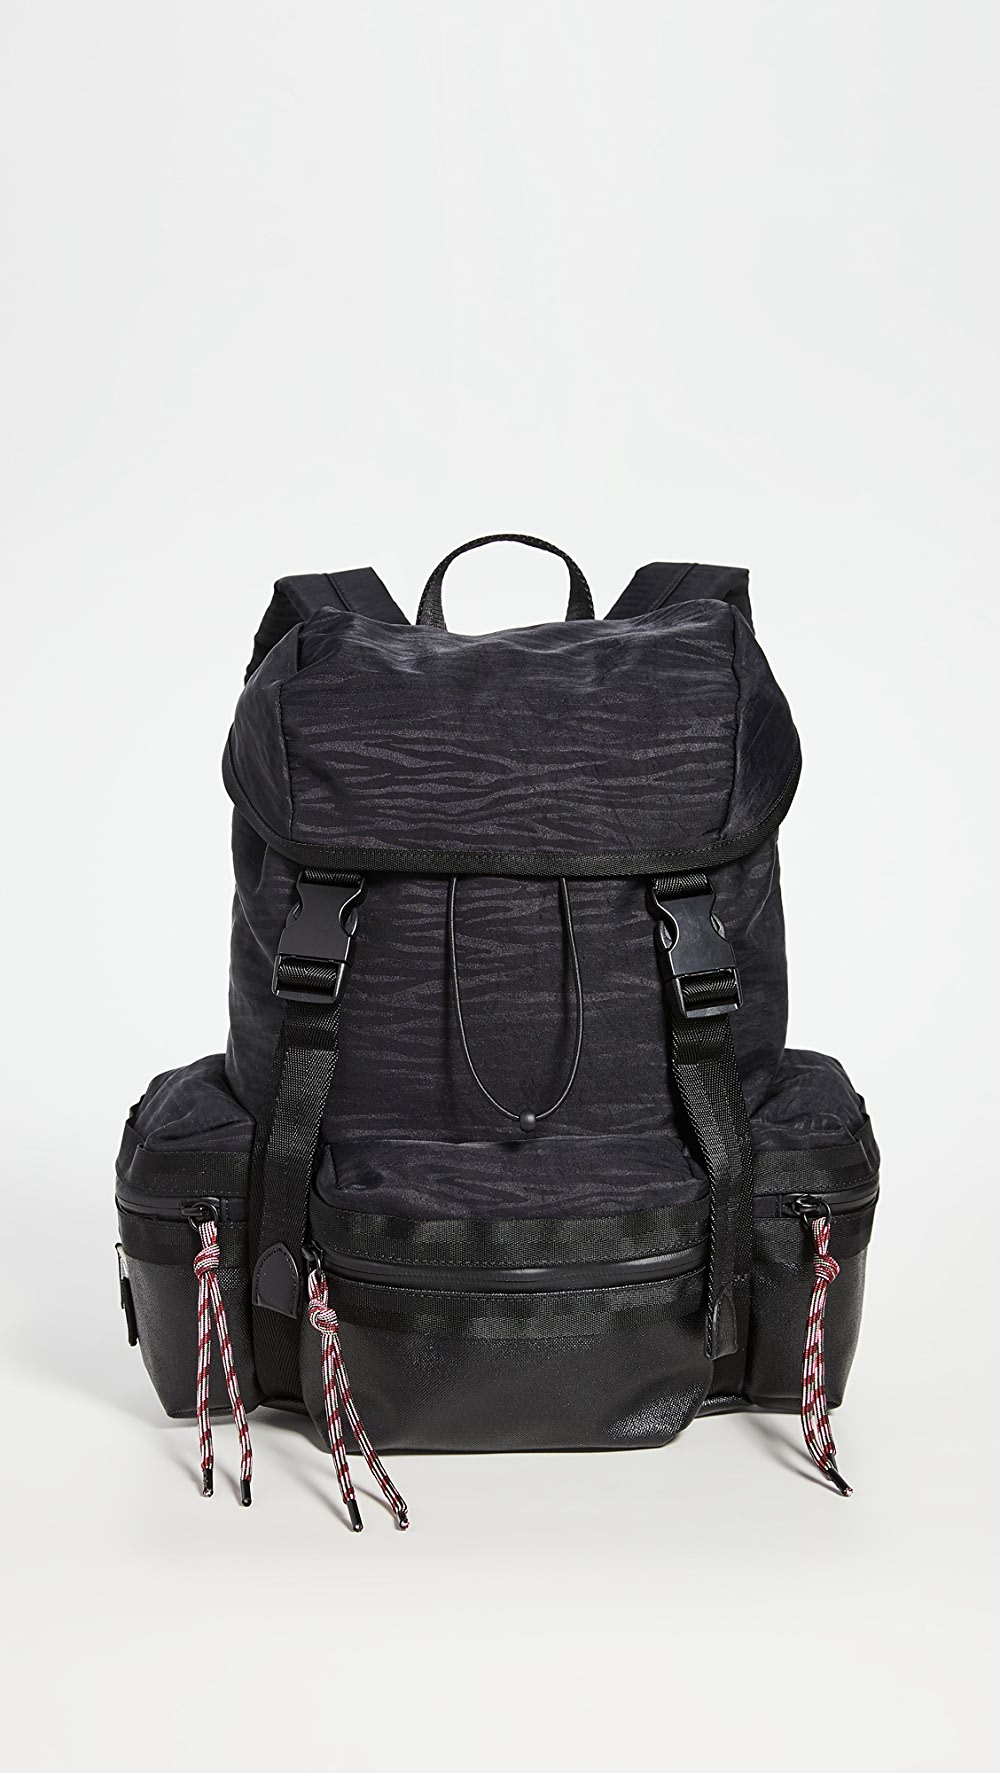 Intellective Rebecca Minkoff - Downtown Nylon Backpack Suitable For Men And Women Of All Ages In All Seasons